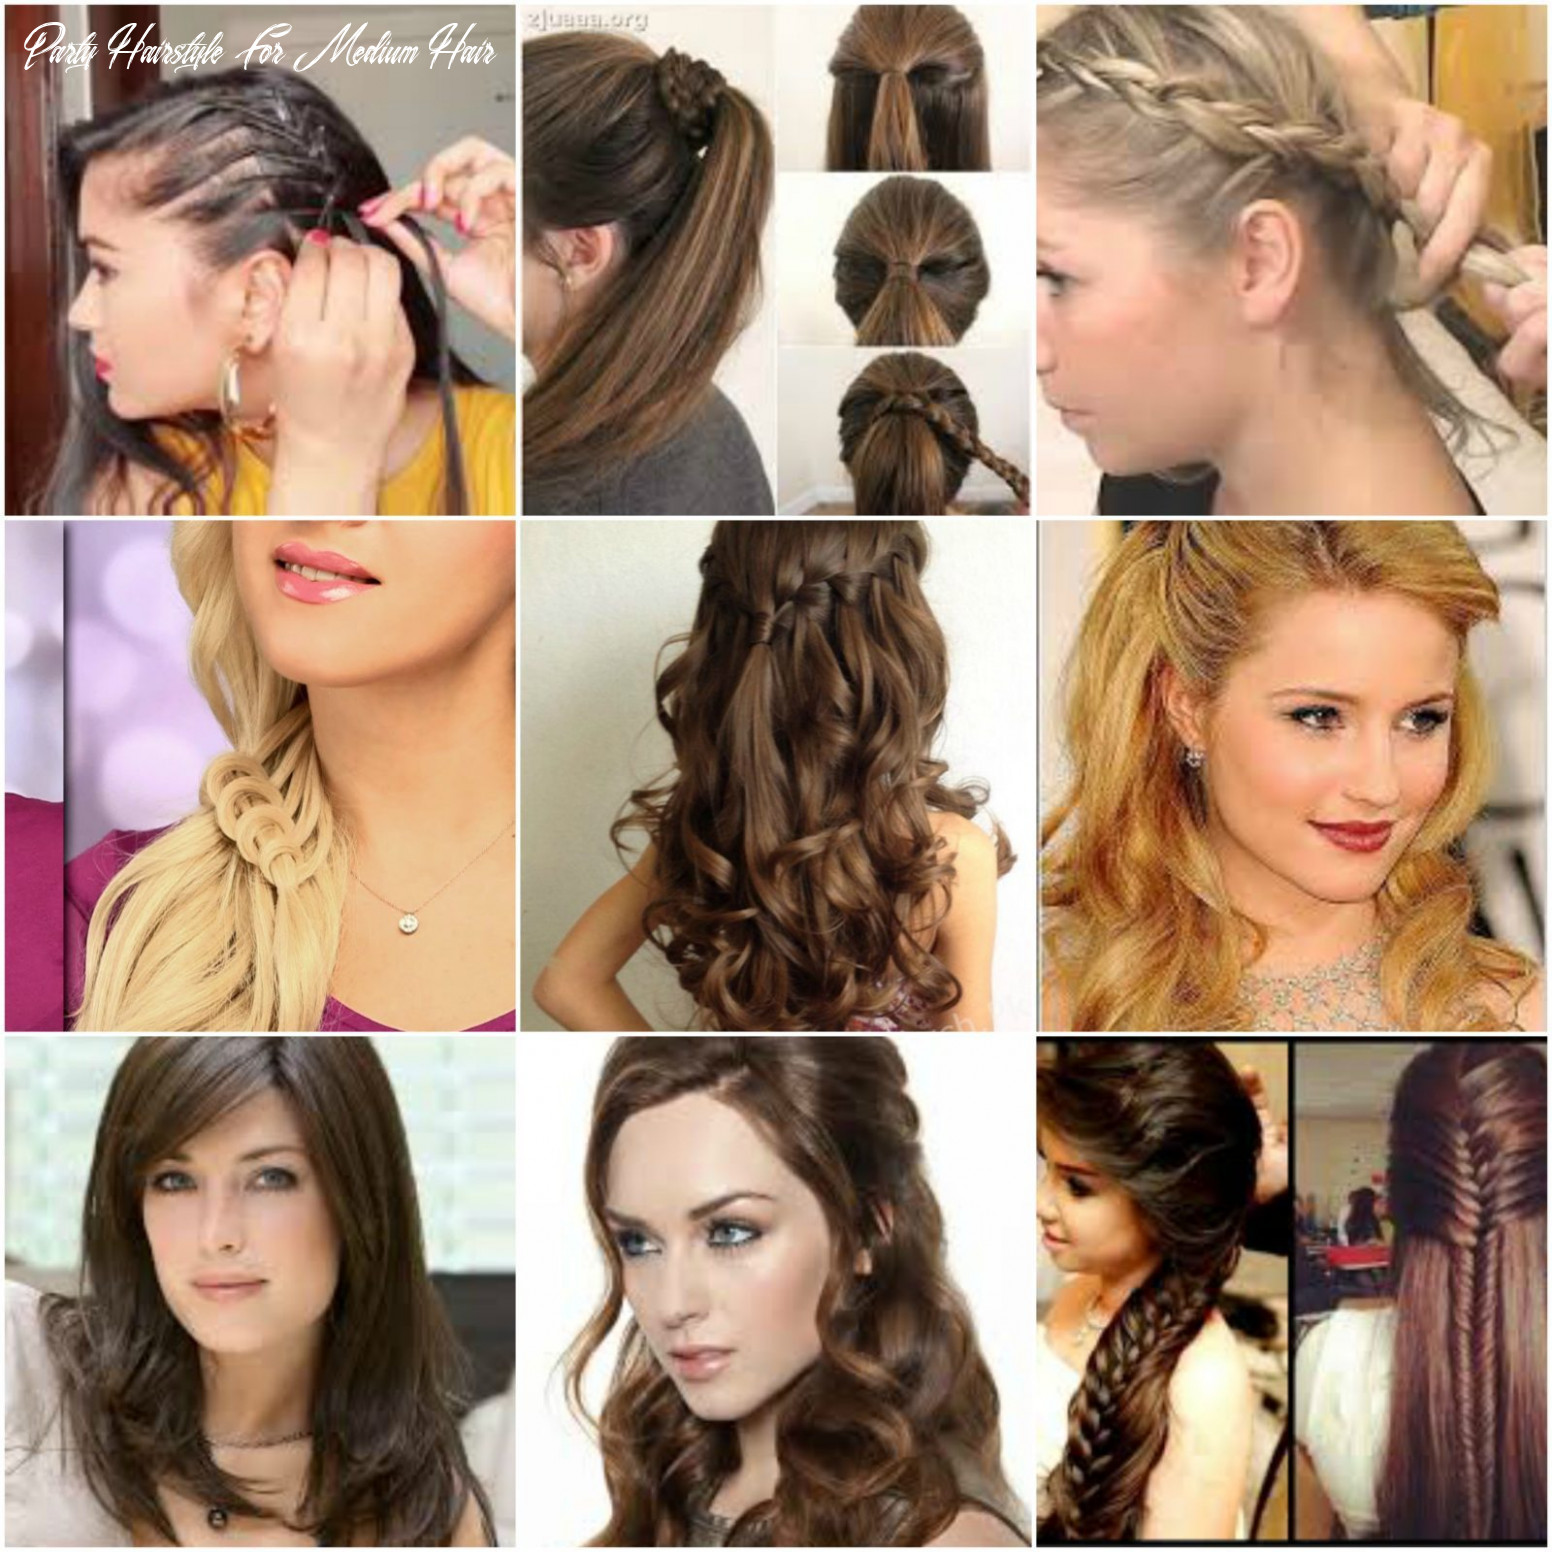 12 easy hairstyles for medium hair for party in 12 party hairstyle for medium hair